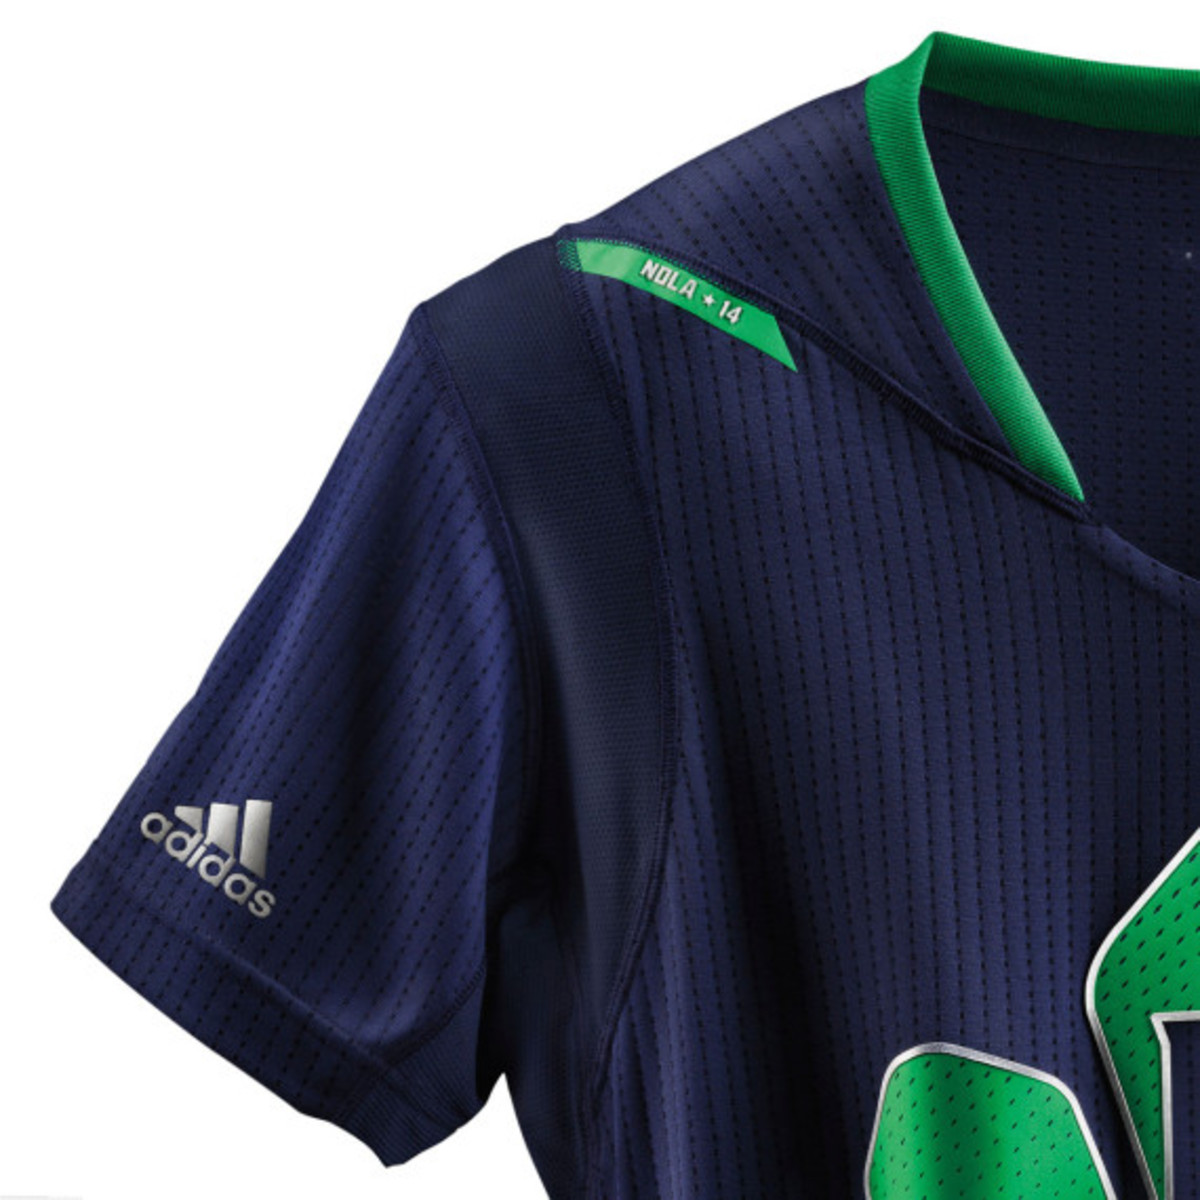 adidas-nba-2014-nba-all-star-game-uniforms-revealed-09